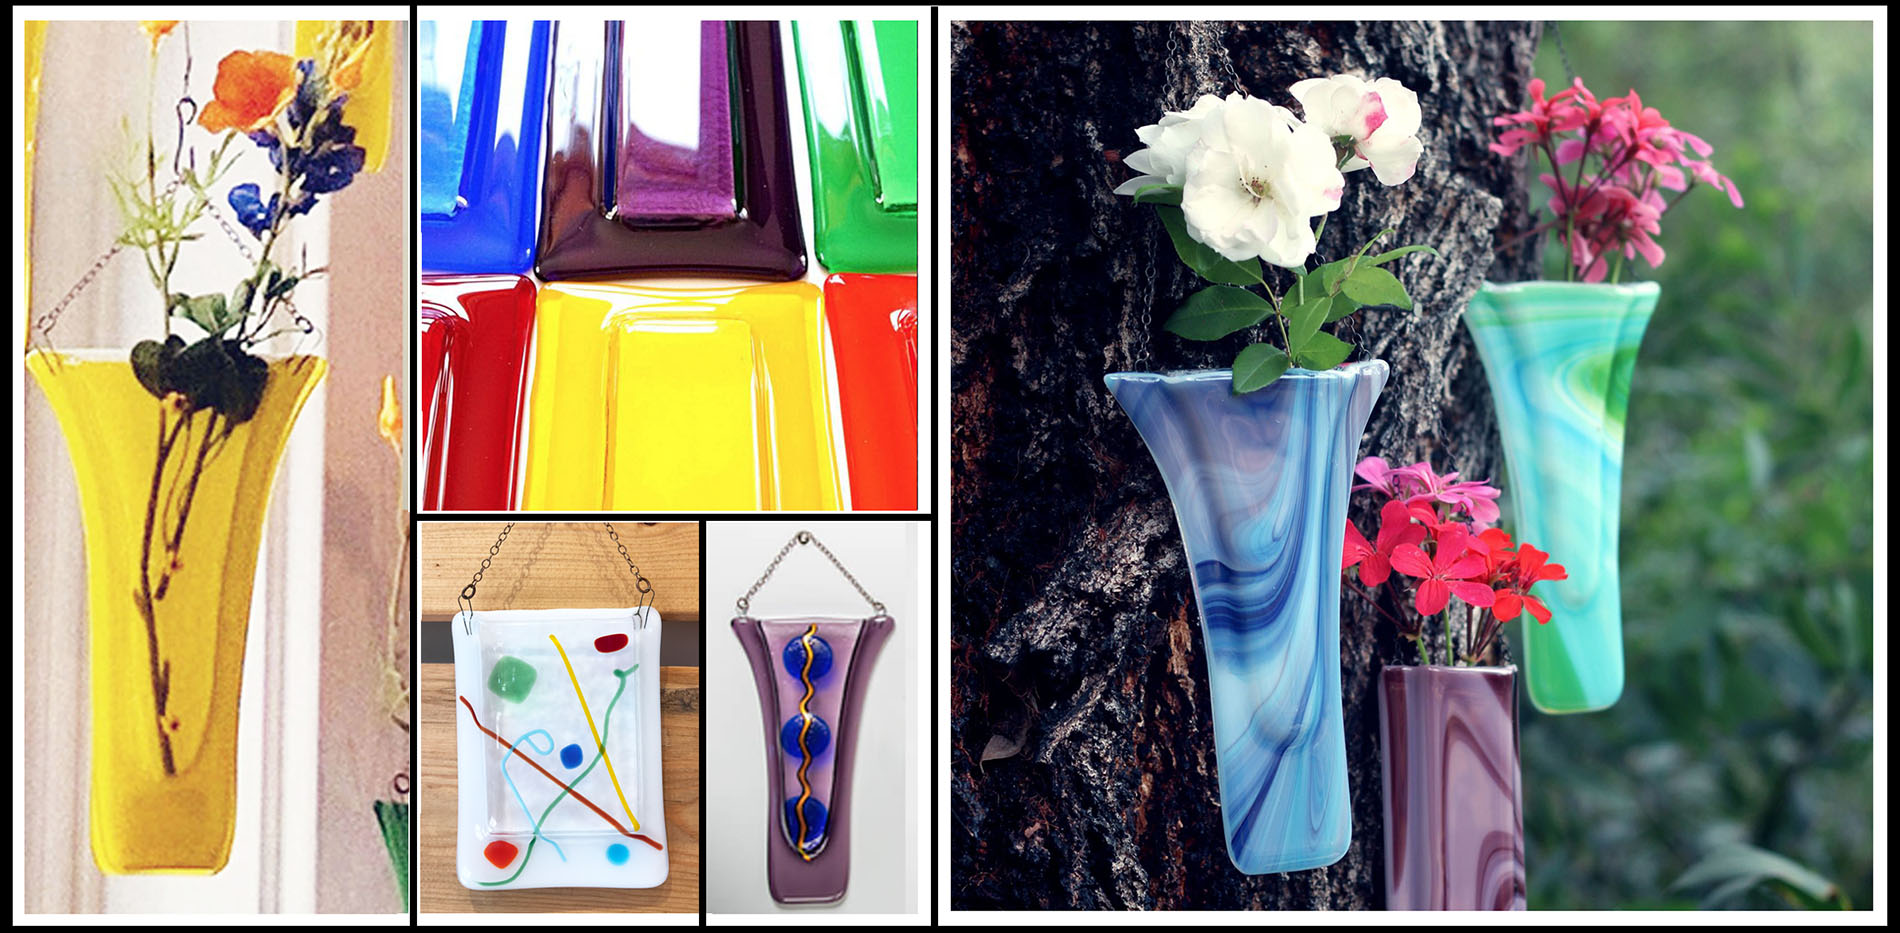 Wall Pocket Vases in Glass